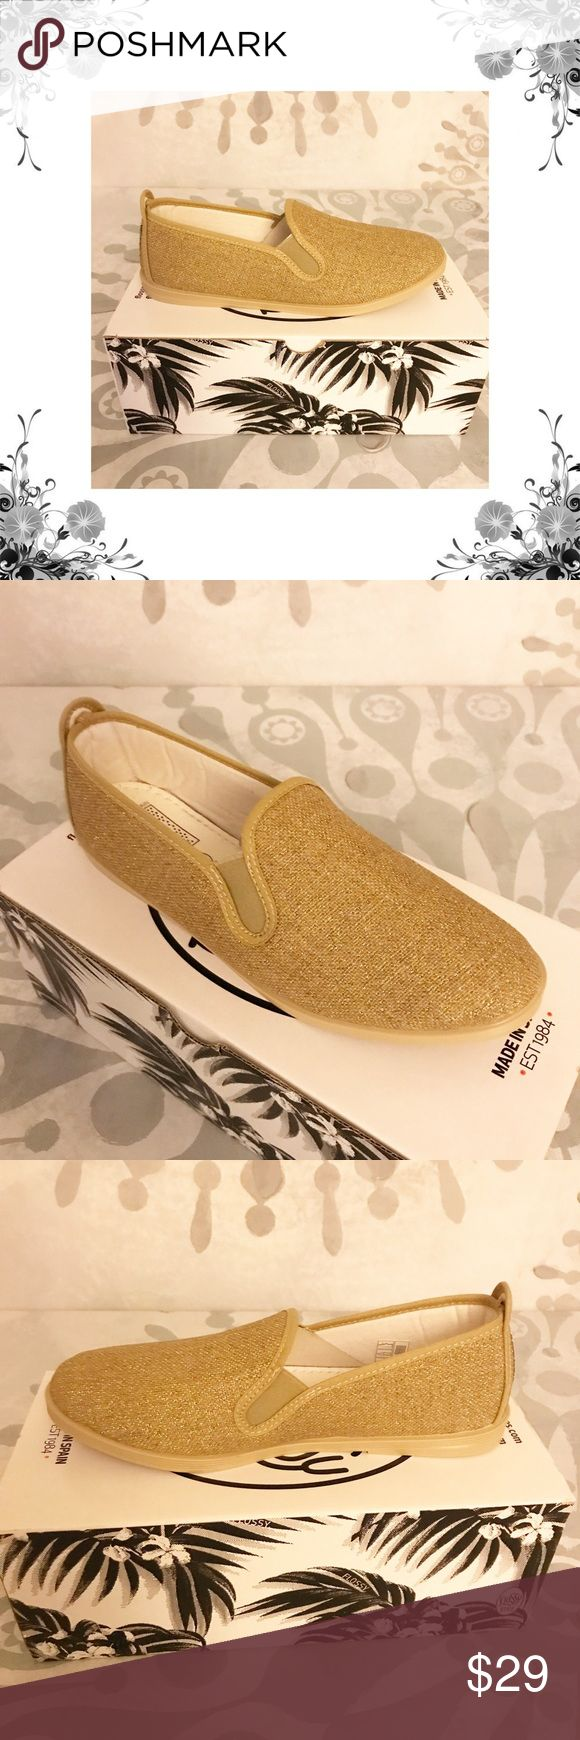 """Flossy Style 'Osuna' Gold Plimsolls 100% Canvas. Rubber sole. Handcrafted in Spain. New with box. Heel Height is approx 1/2"""". Platform Height is approx 1/4"""". Slip On. Material is Textile Upper/Man Made Outsole. Textured Metallic Fabric. Bundle for discounts! Thank you for shopping my closet! Flossy Style Shoes Flats & Loafers"""